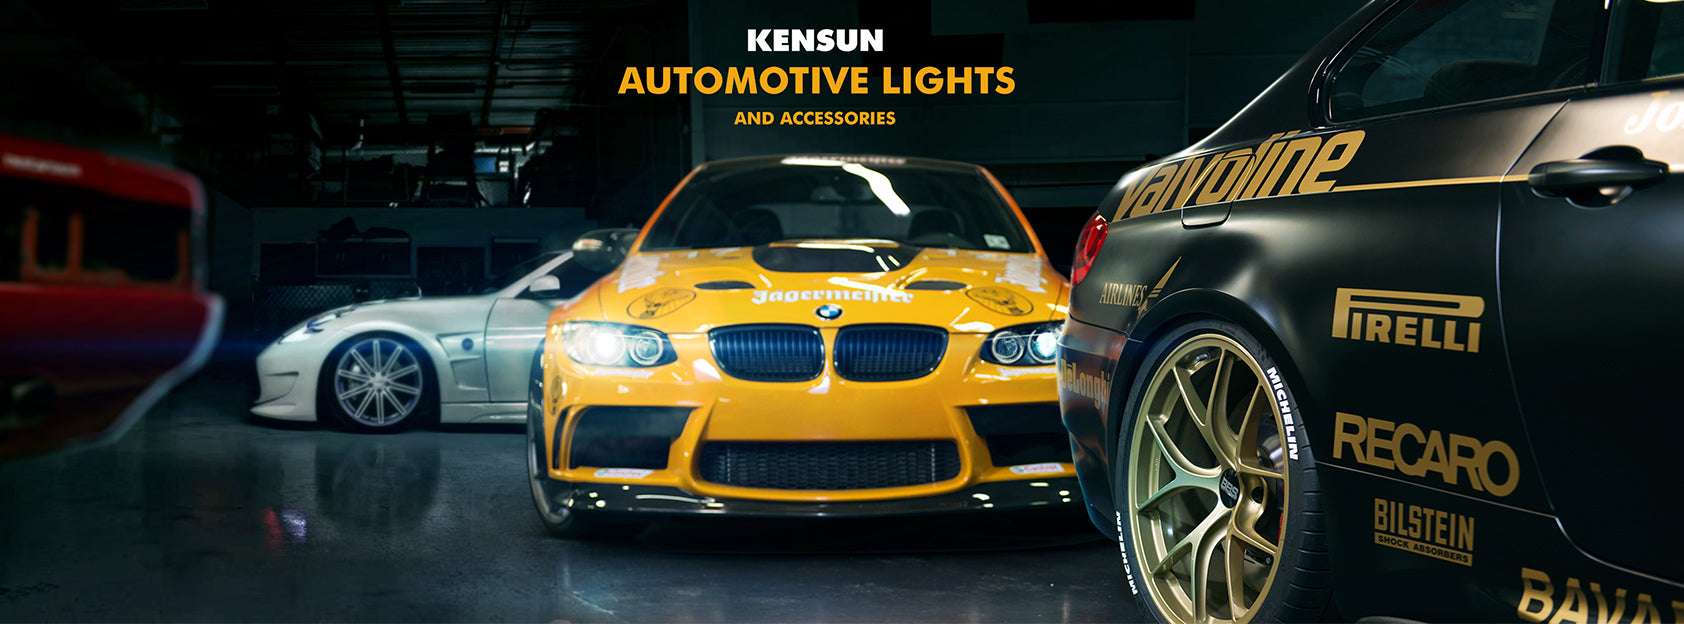 kensun inc. best hid&led headlights